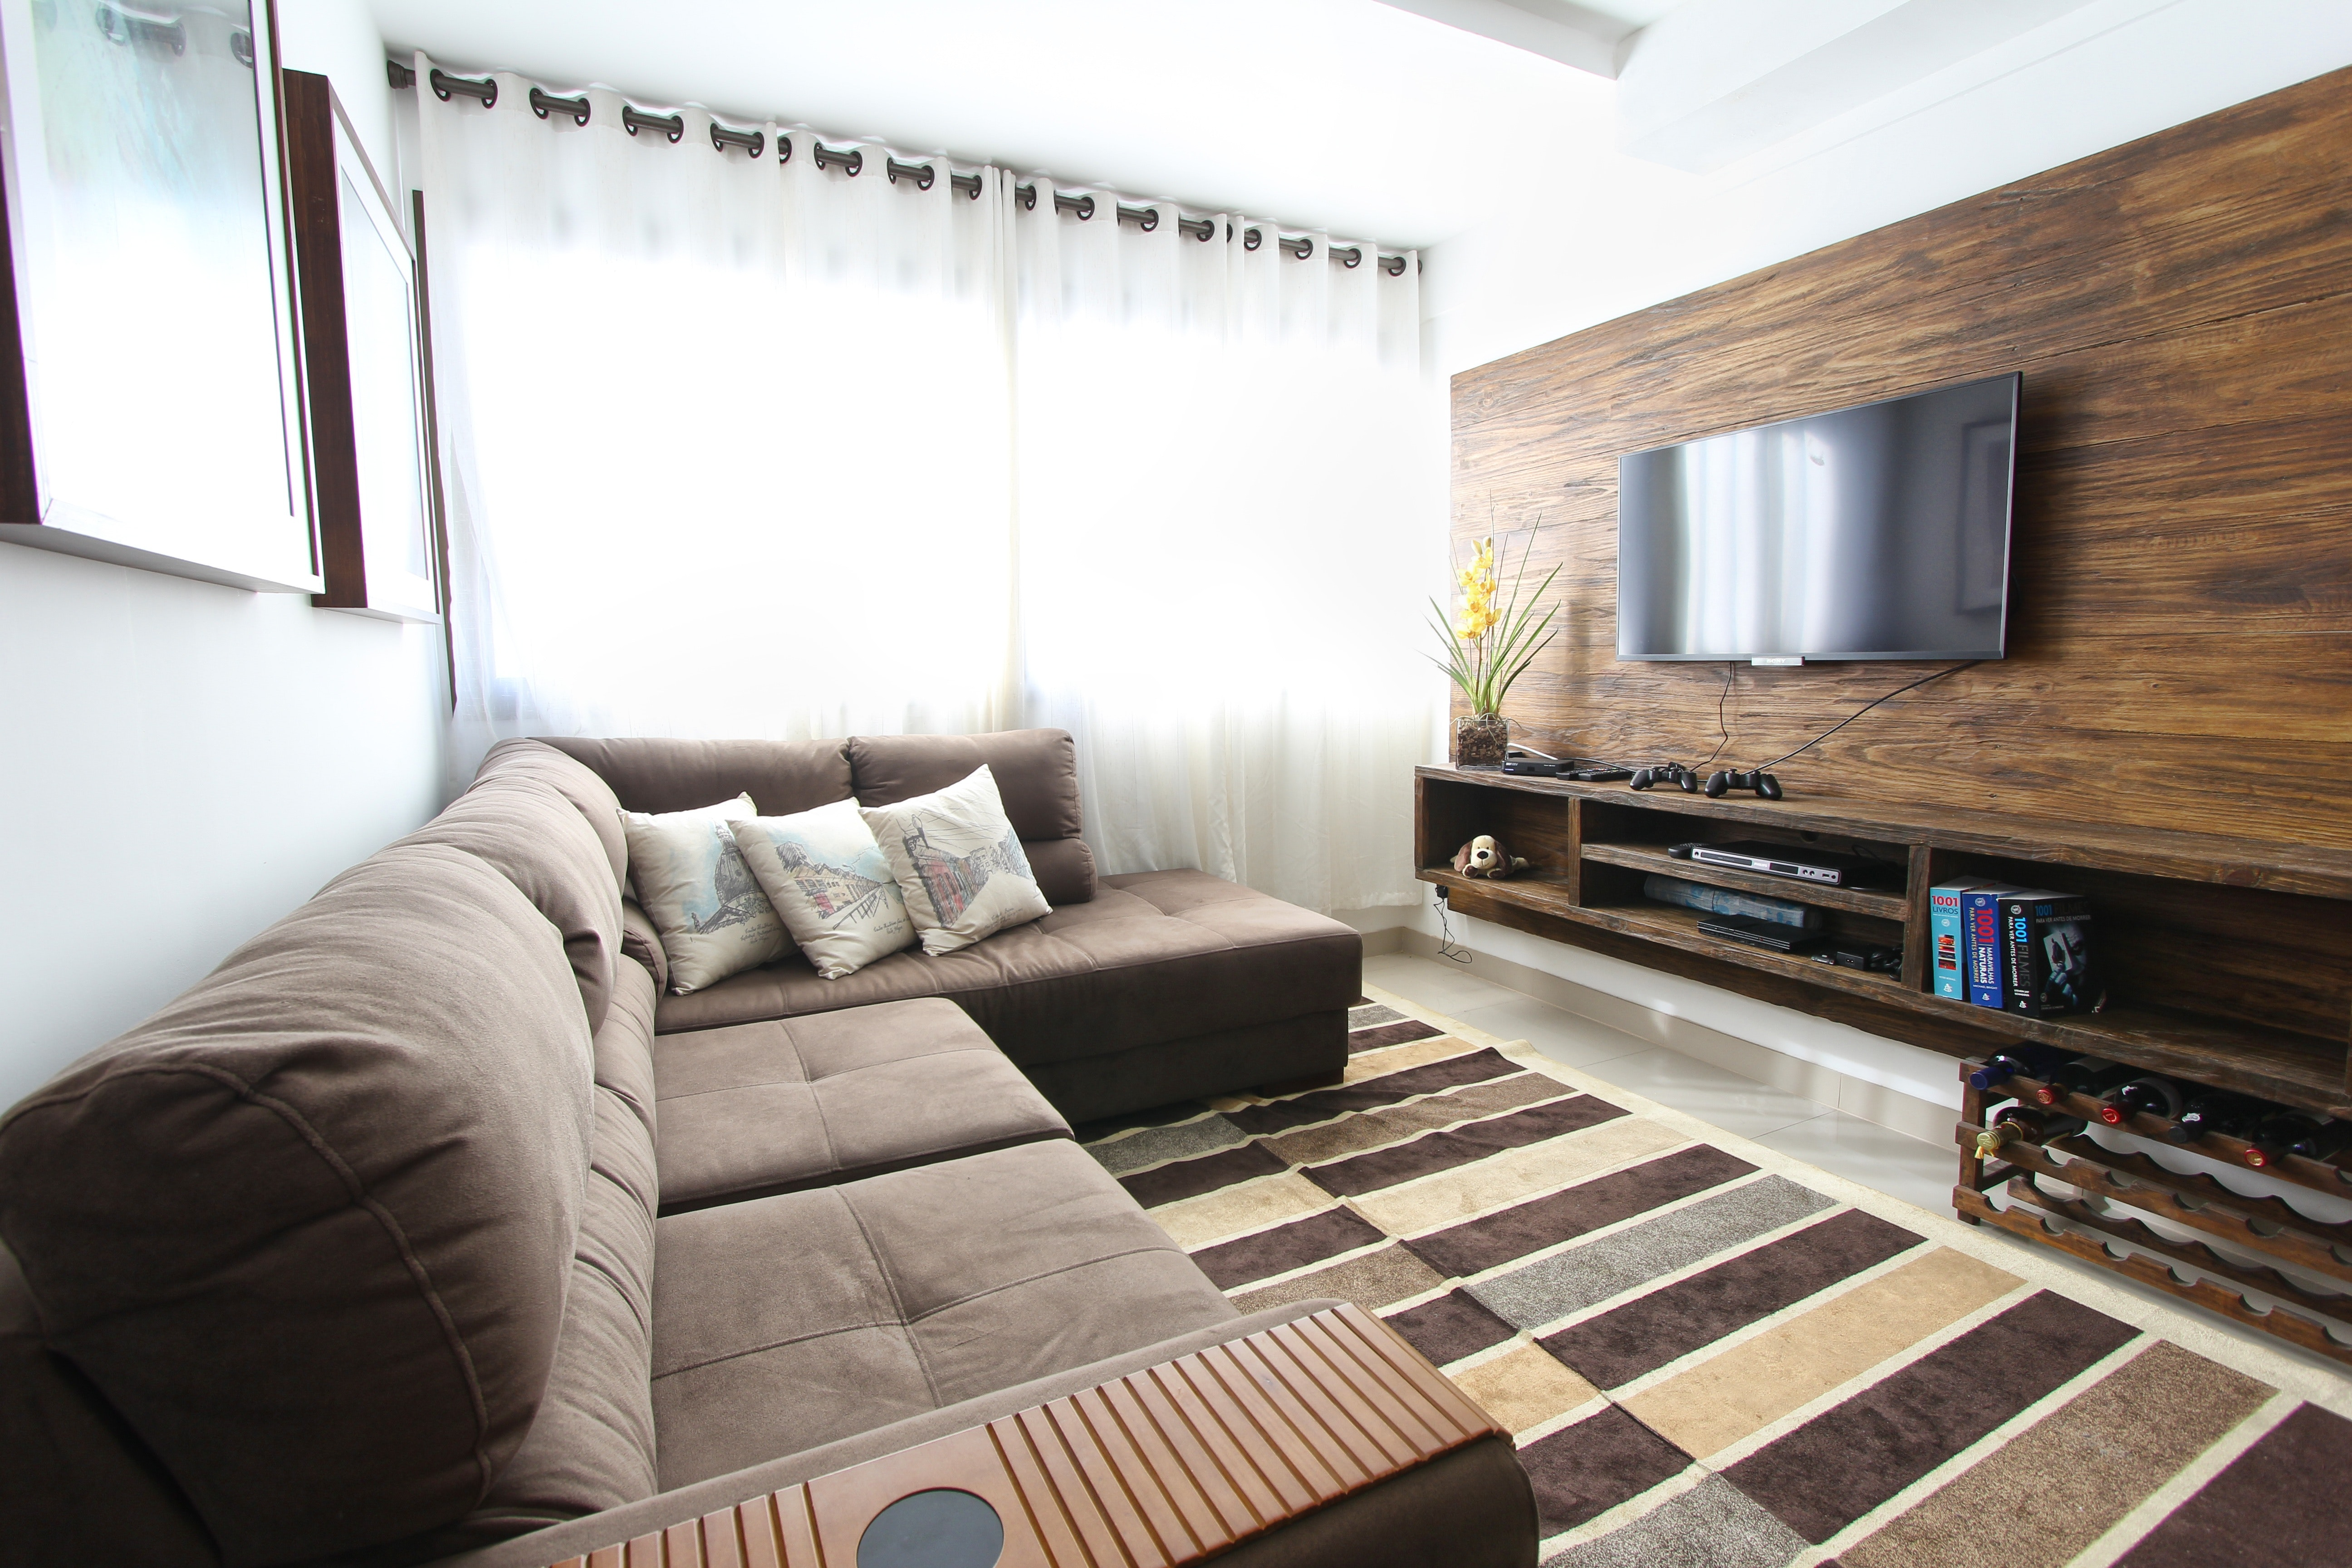 Garage converted into a living room with a TV on the wall and a large L-shape sofa